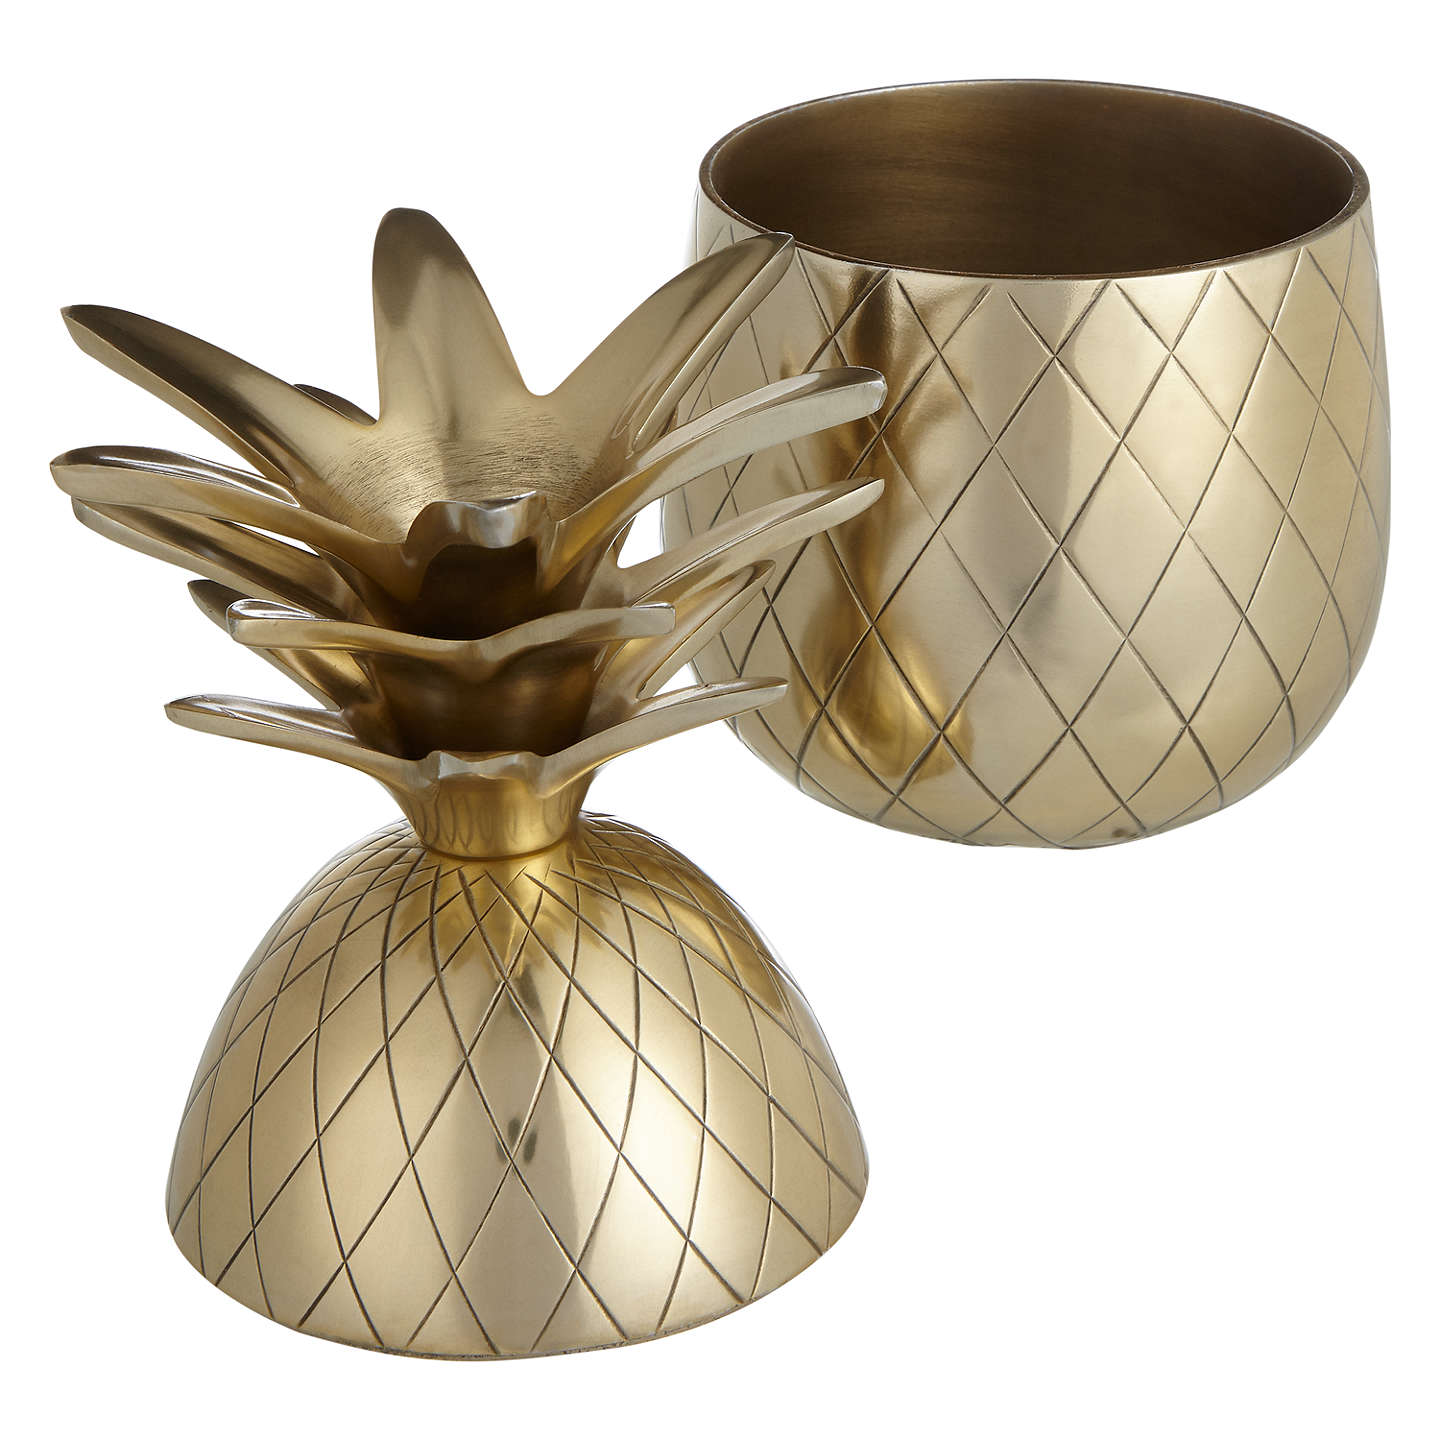 BuyJohn Lewis Decorative Gold Pineapple, Small Online at johnlewis.com